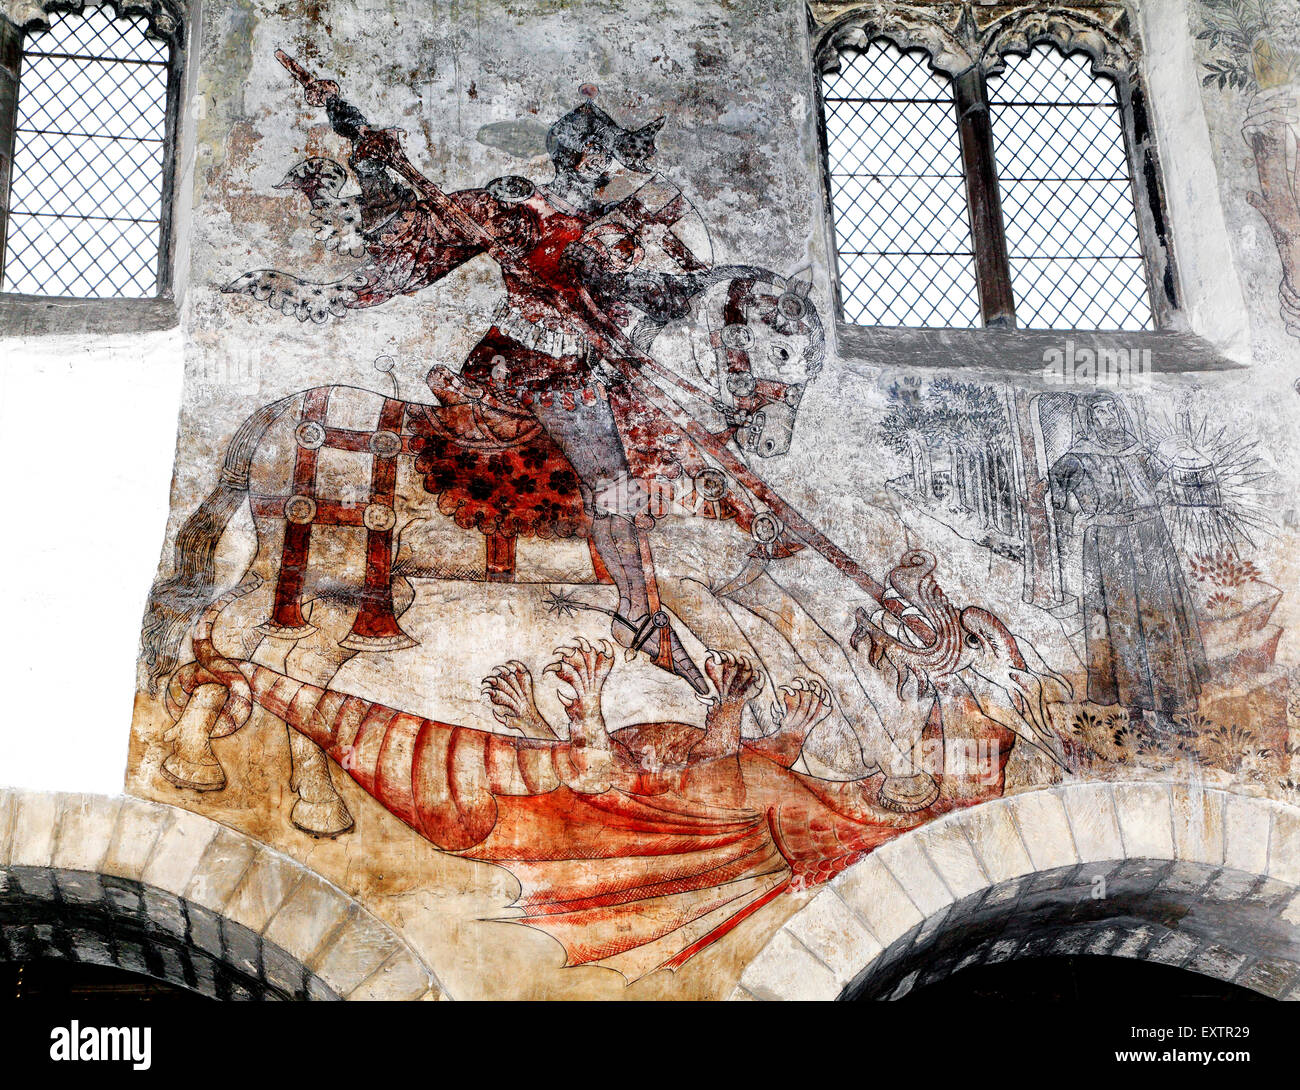 St. George and the Dragon, medieval wall painting, Pickering, Yorkshire England UK saints saint paintings Stock Photo